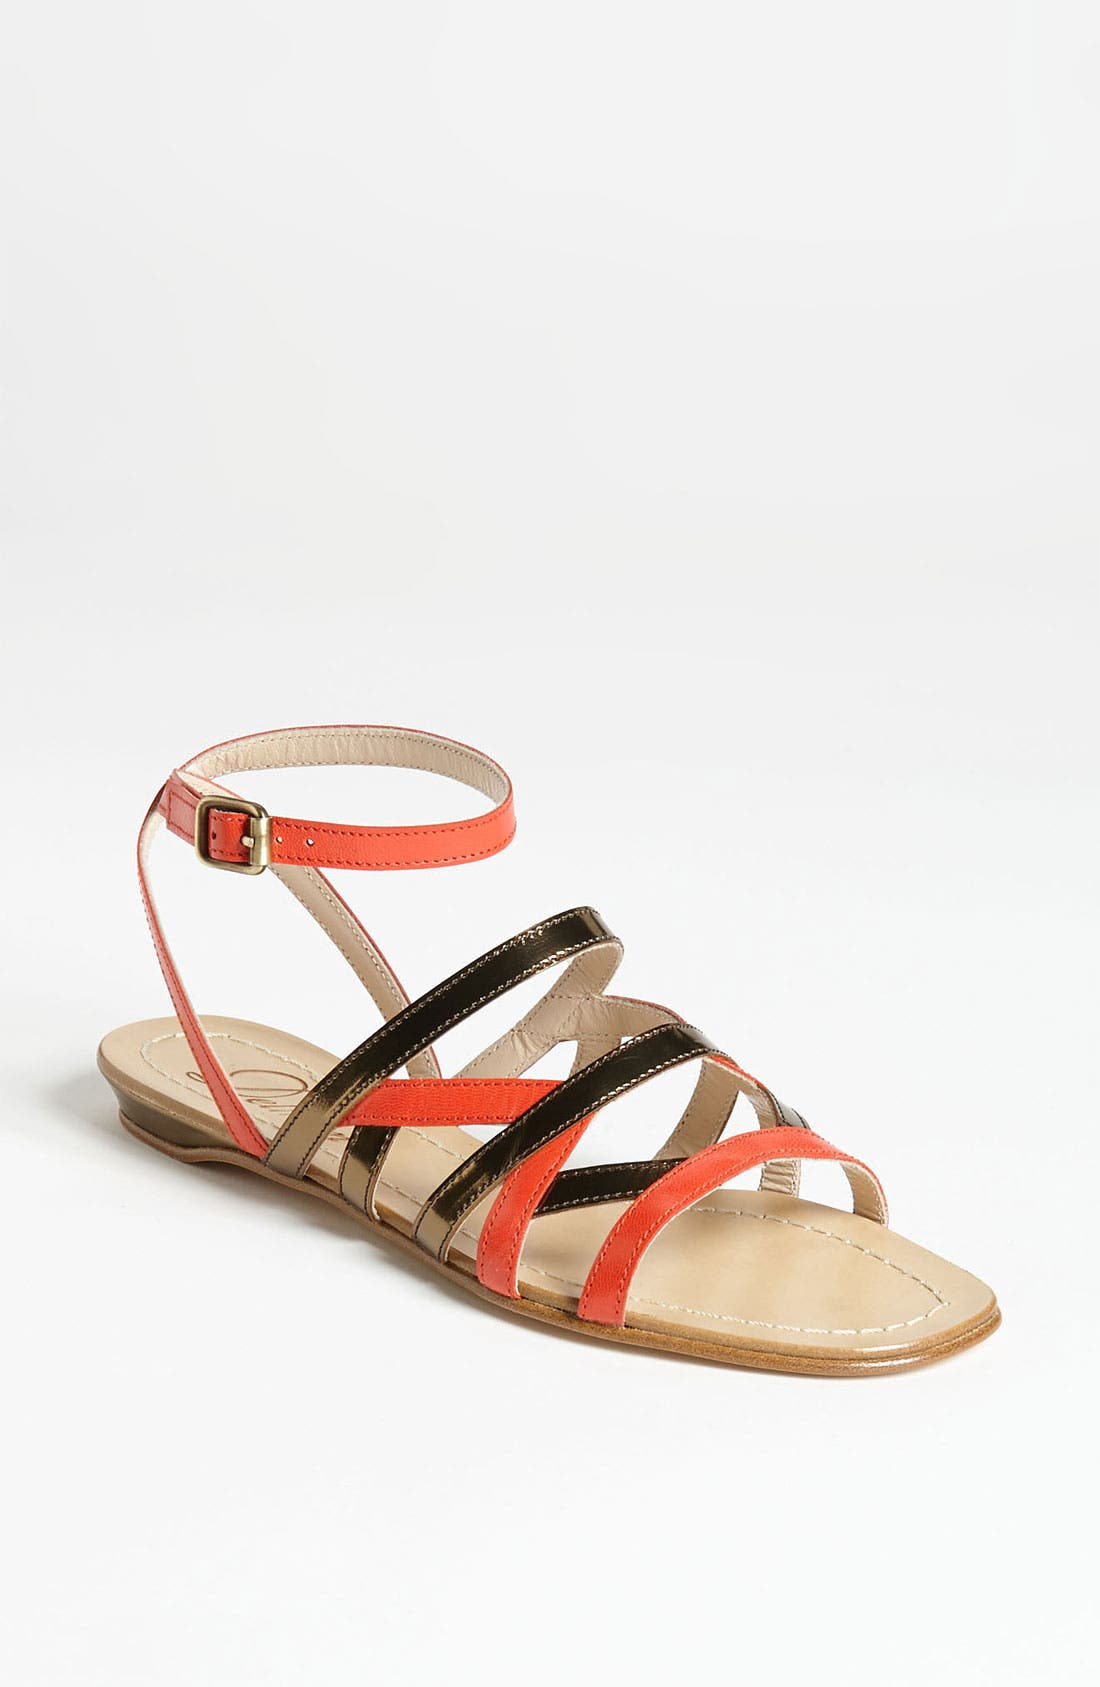 Alternate Image 1 Selected - Delman 'Colin' Sandal